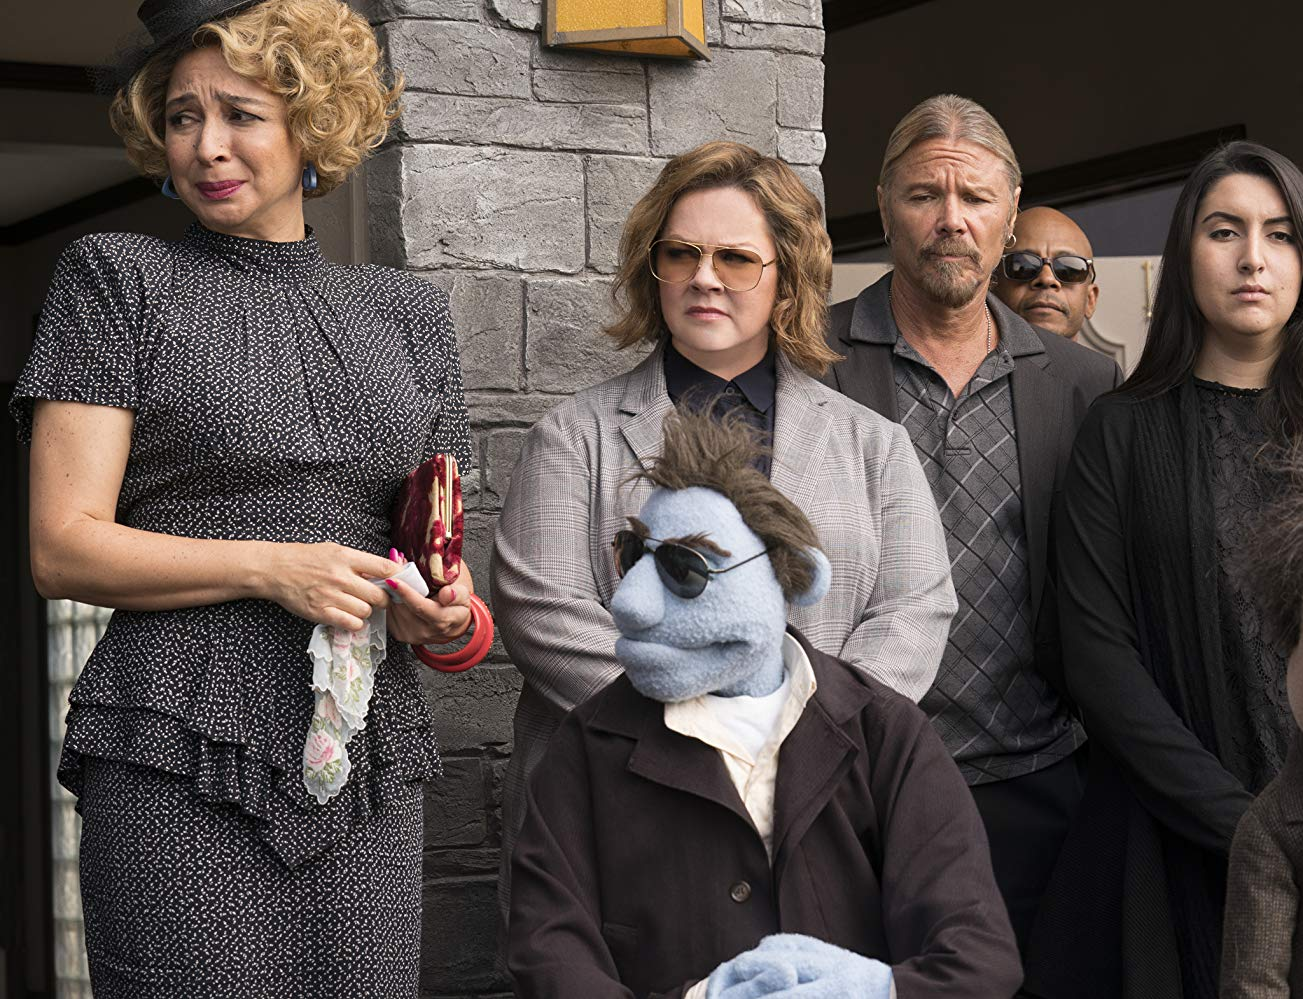 The Happytime Murders, movie reviews, Lucas Mirabella